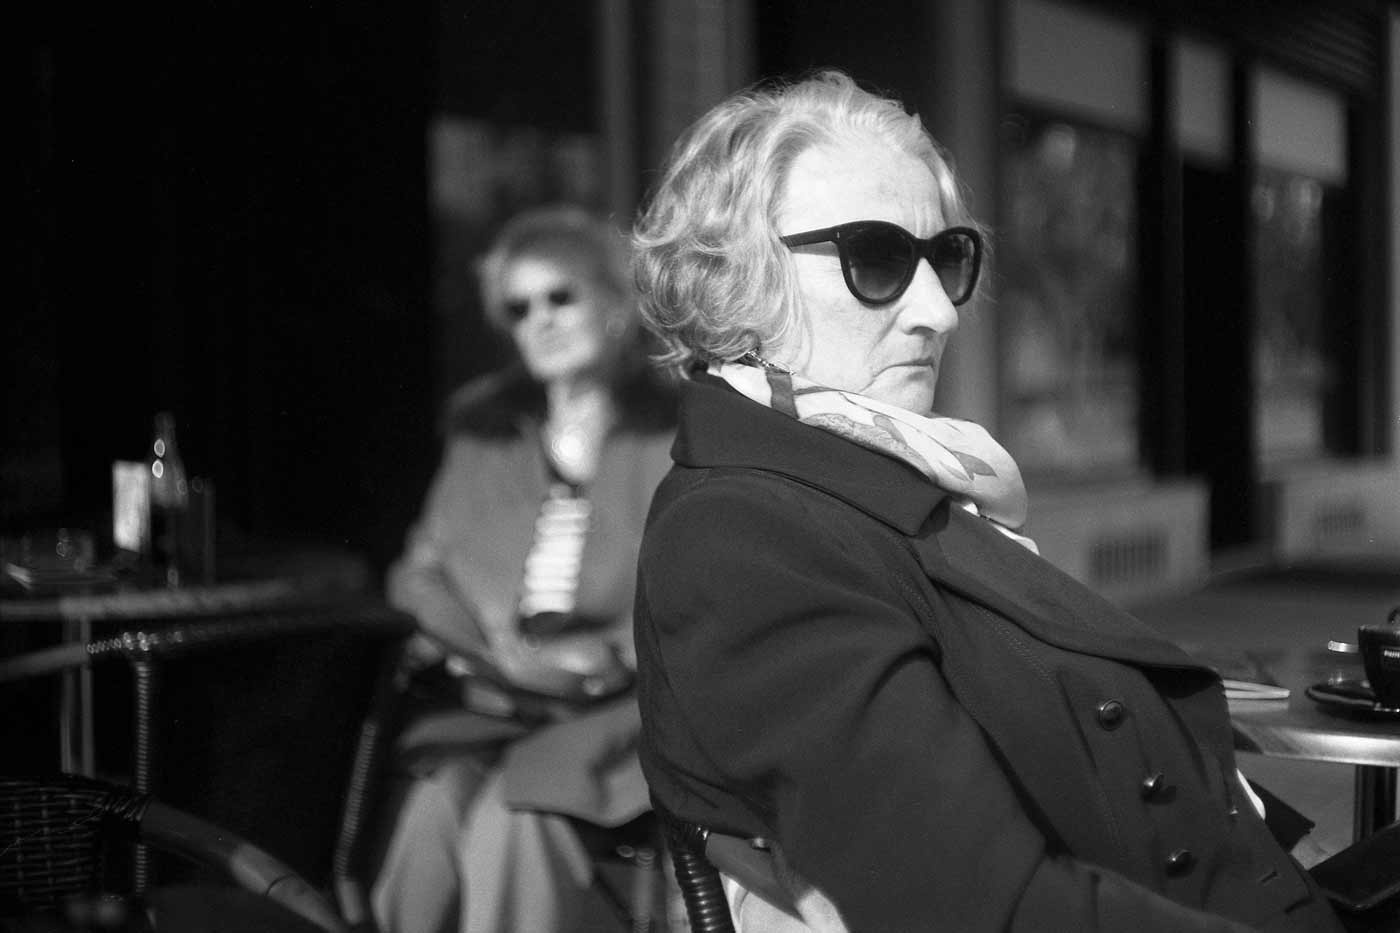 Leica-summicron-50mm-f2-50-f2.0-collapsible-v1-cron-lens-review-karlov-vary-ilford-fp4-125-ladies-portrait-sunglasses